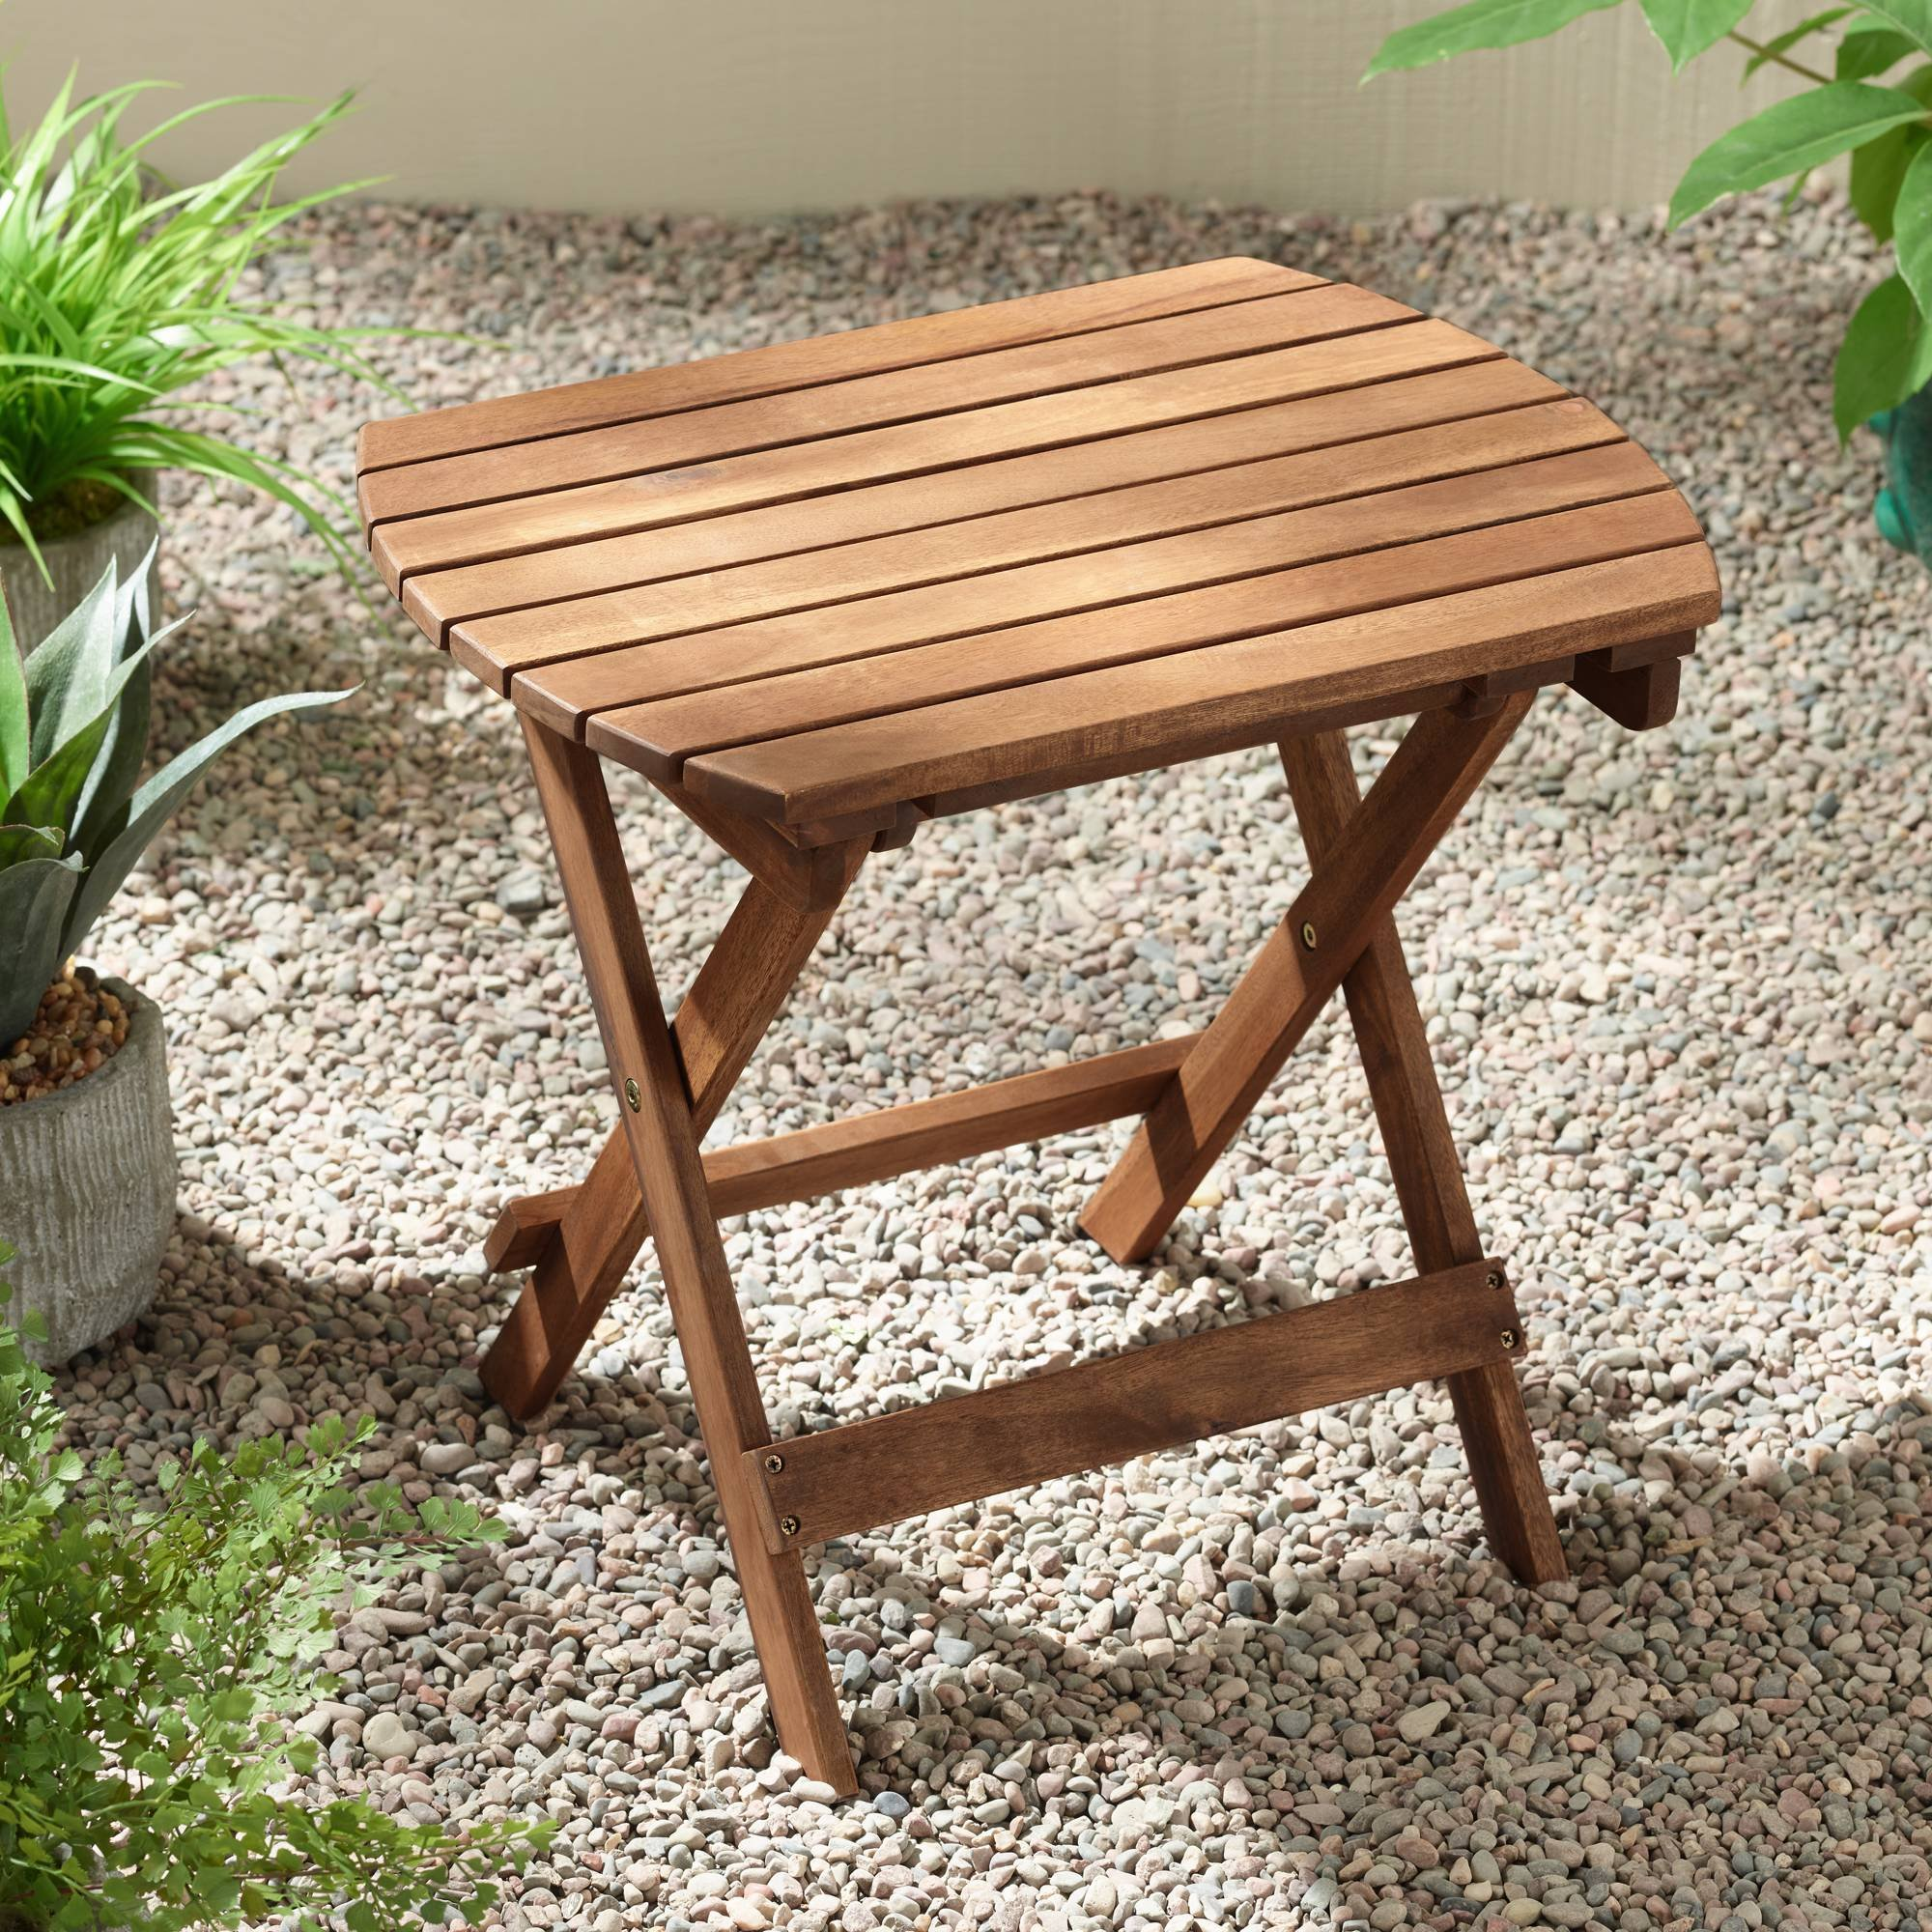 Teal Island Designs Monterey Natural Wood Outdoor Side Table by Teal Island Designs